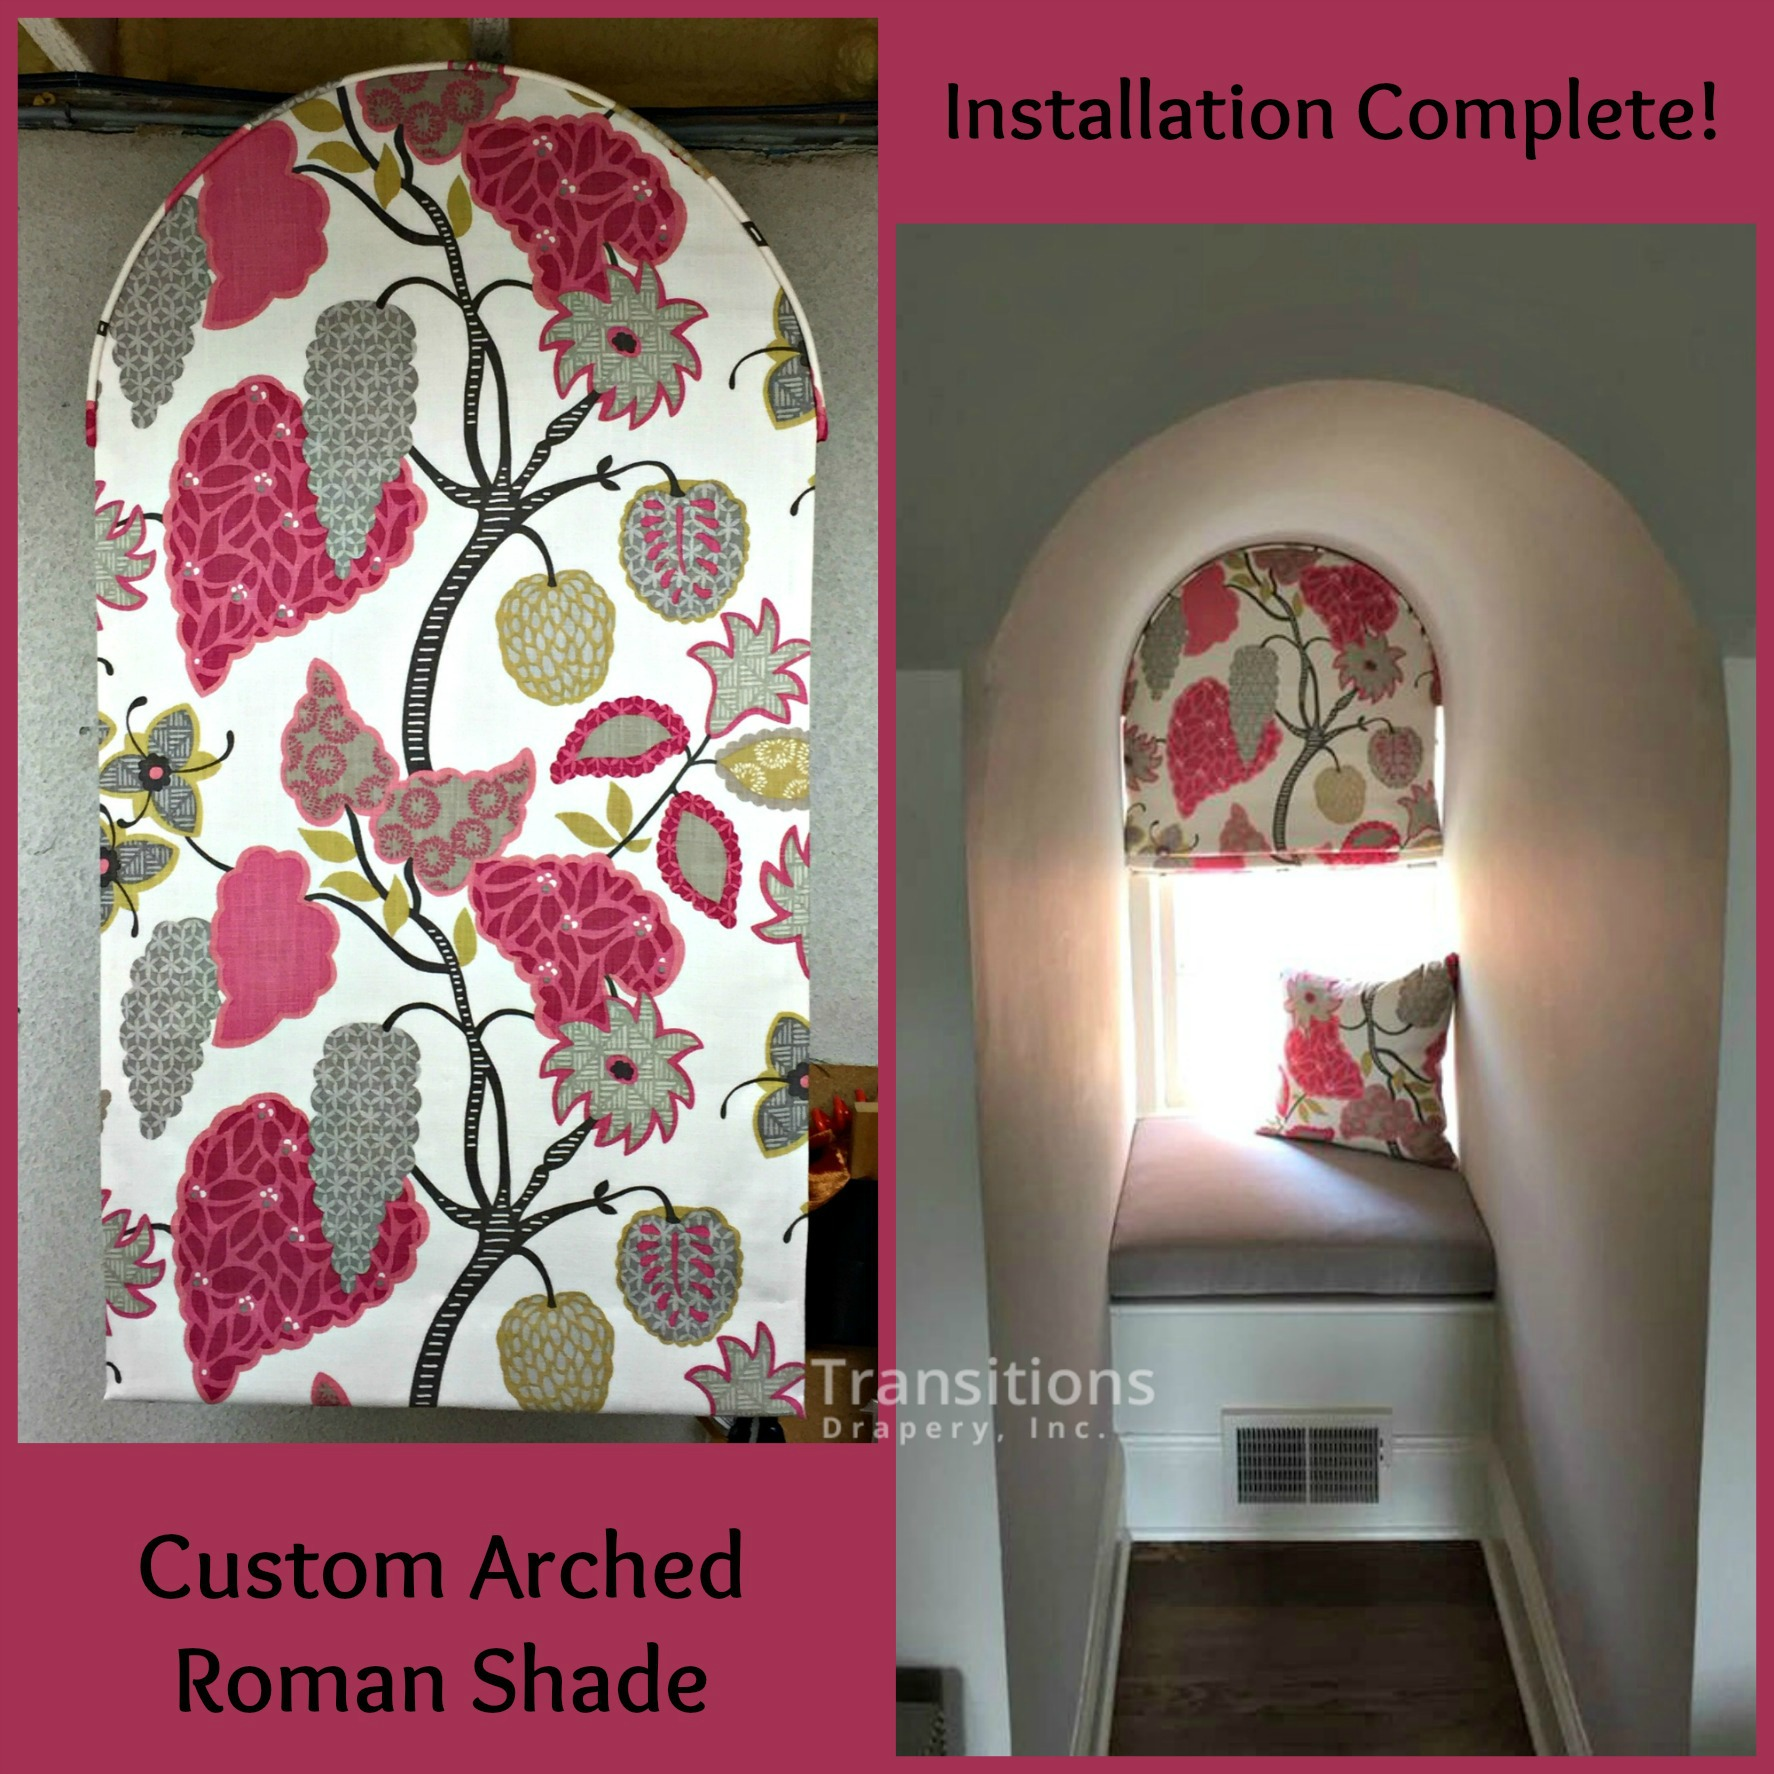 Arched roman shade and pillow